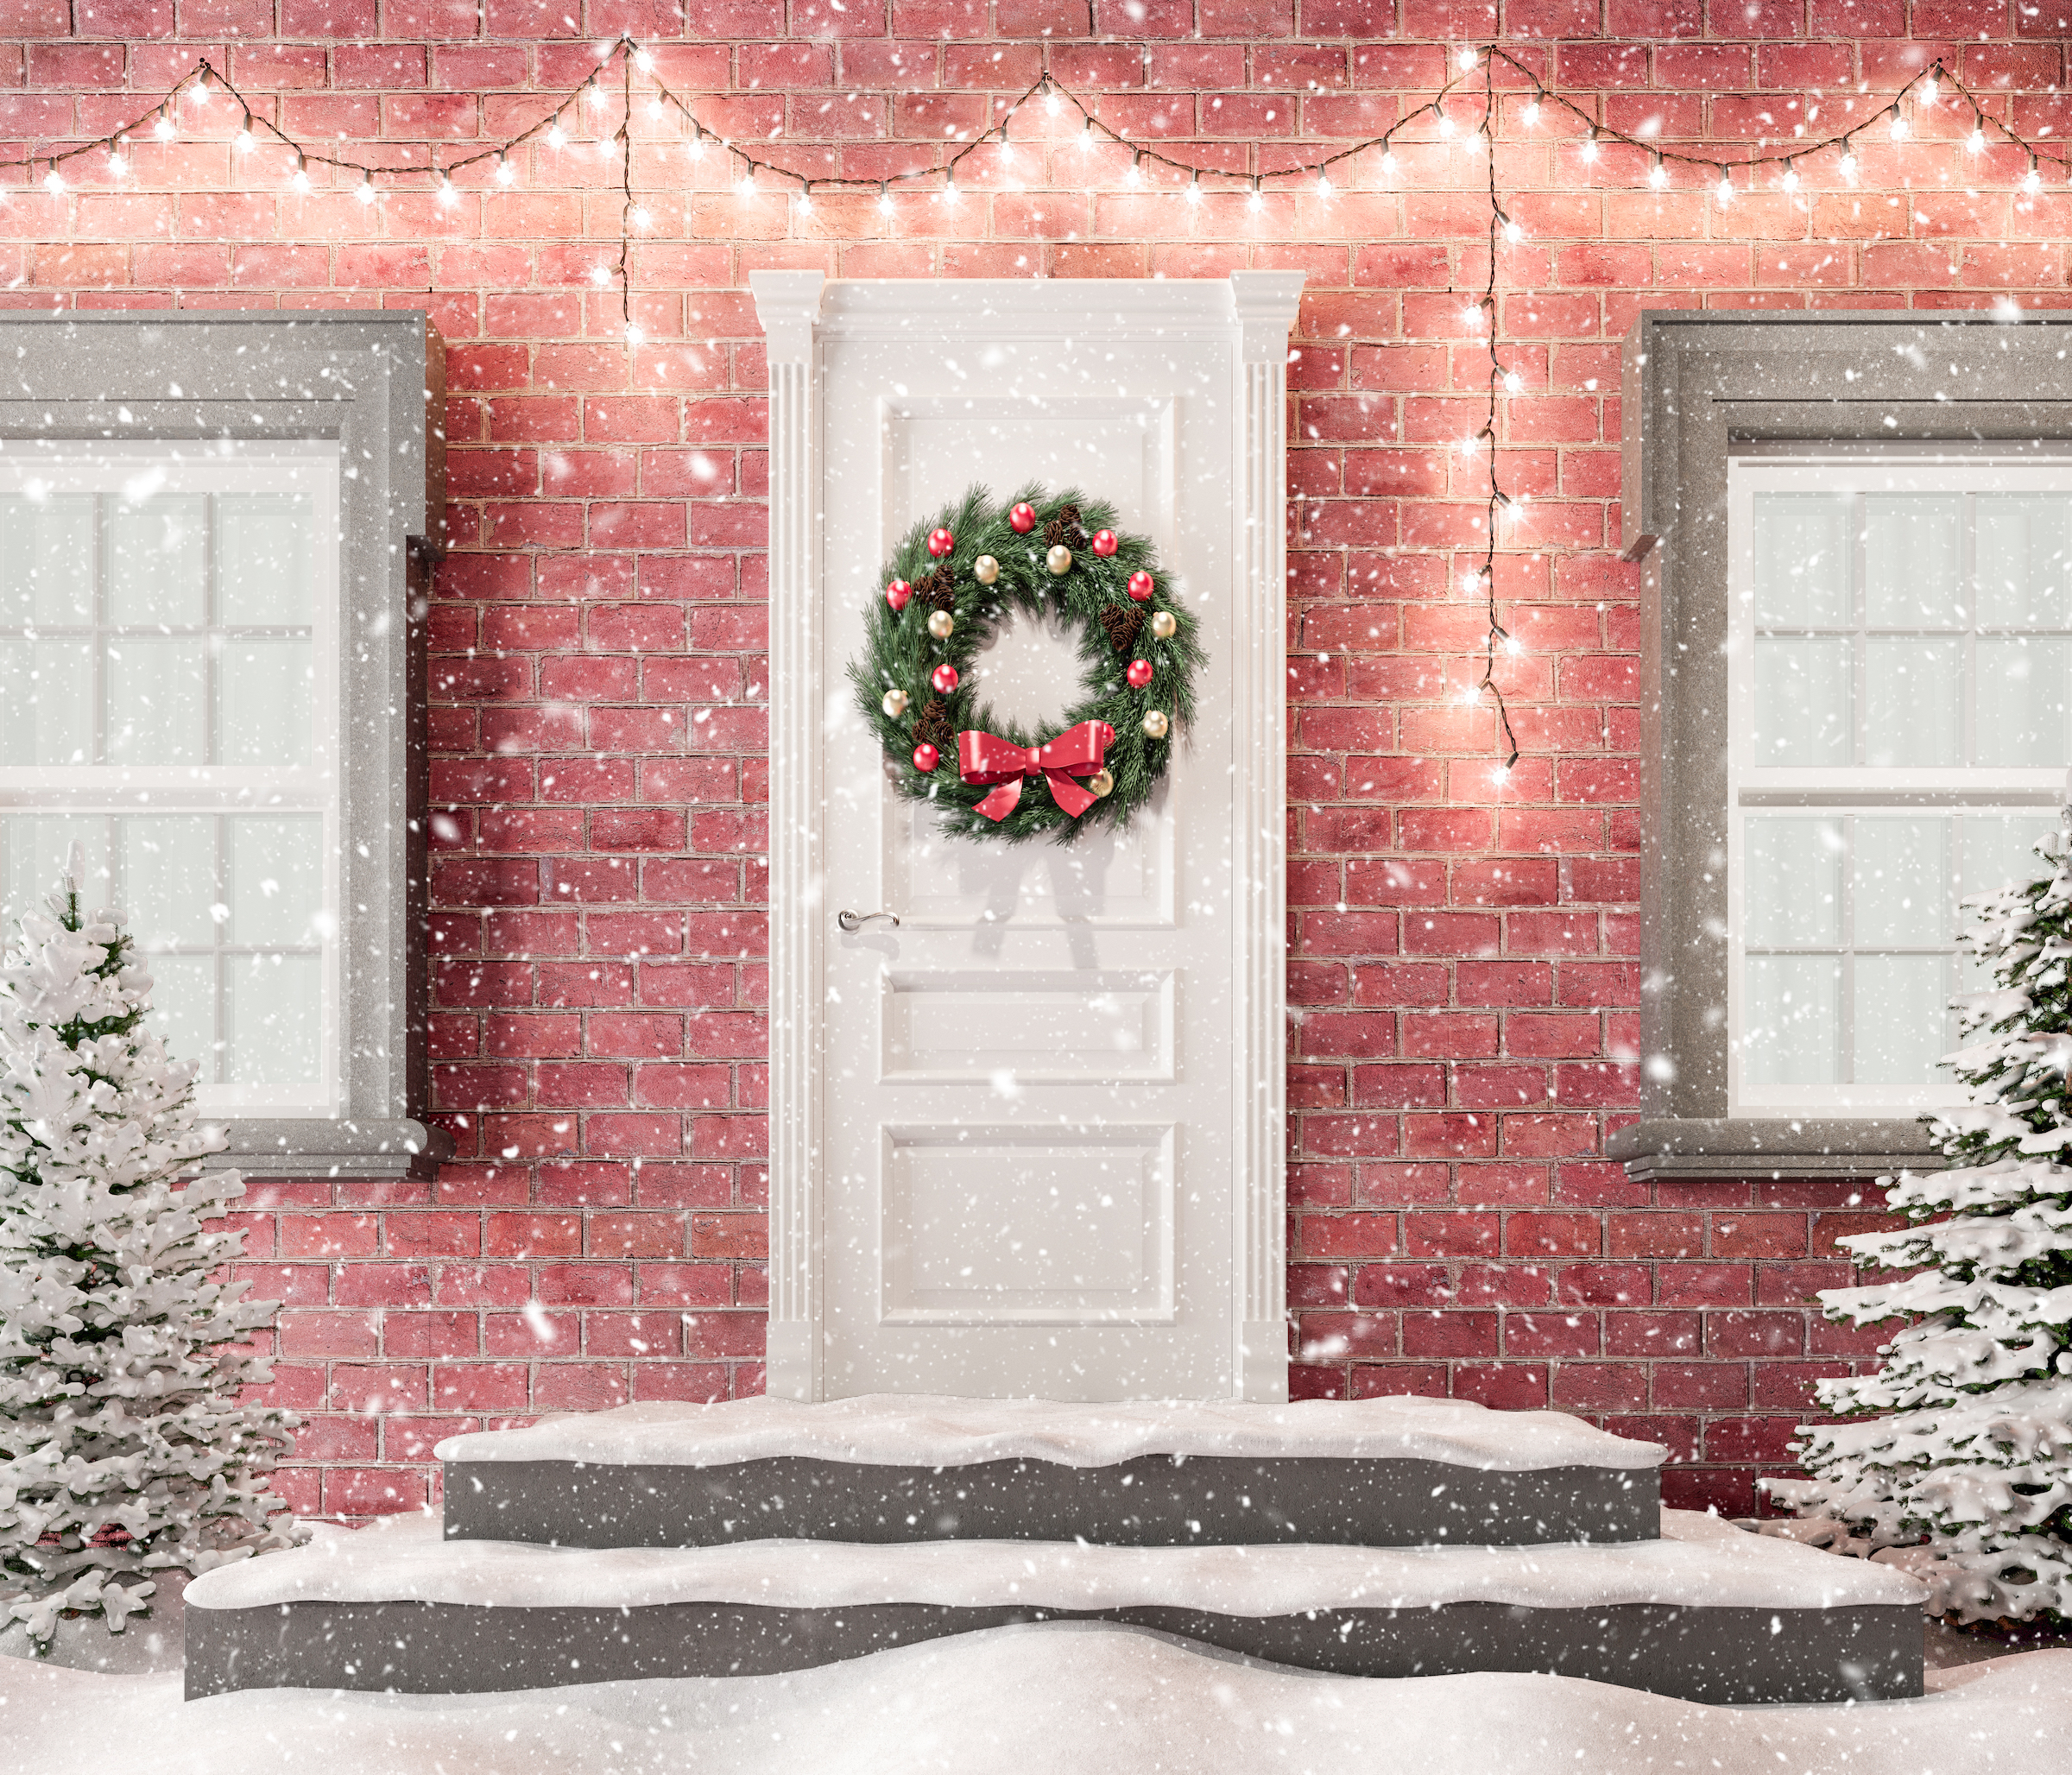 Christmas In The Country Erie Pa 2021 Christmas Weather Forecast 2020 Will It Be A White Christmas The Old Farmer S Almanac